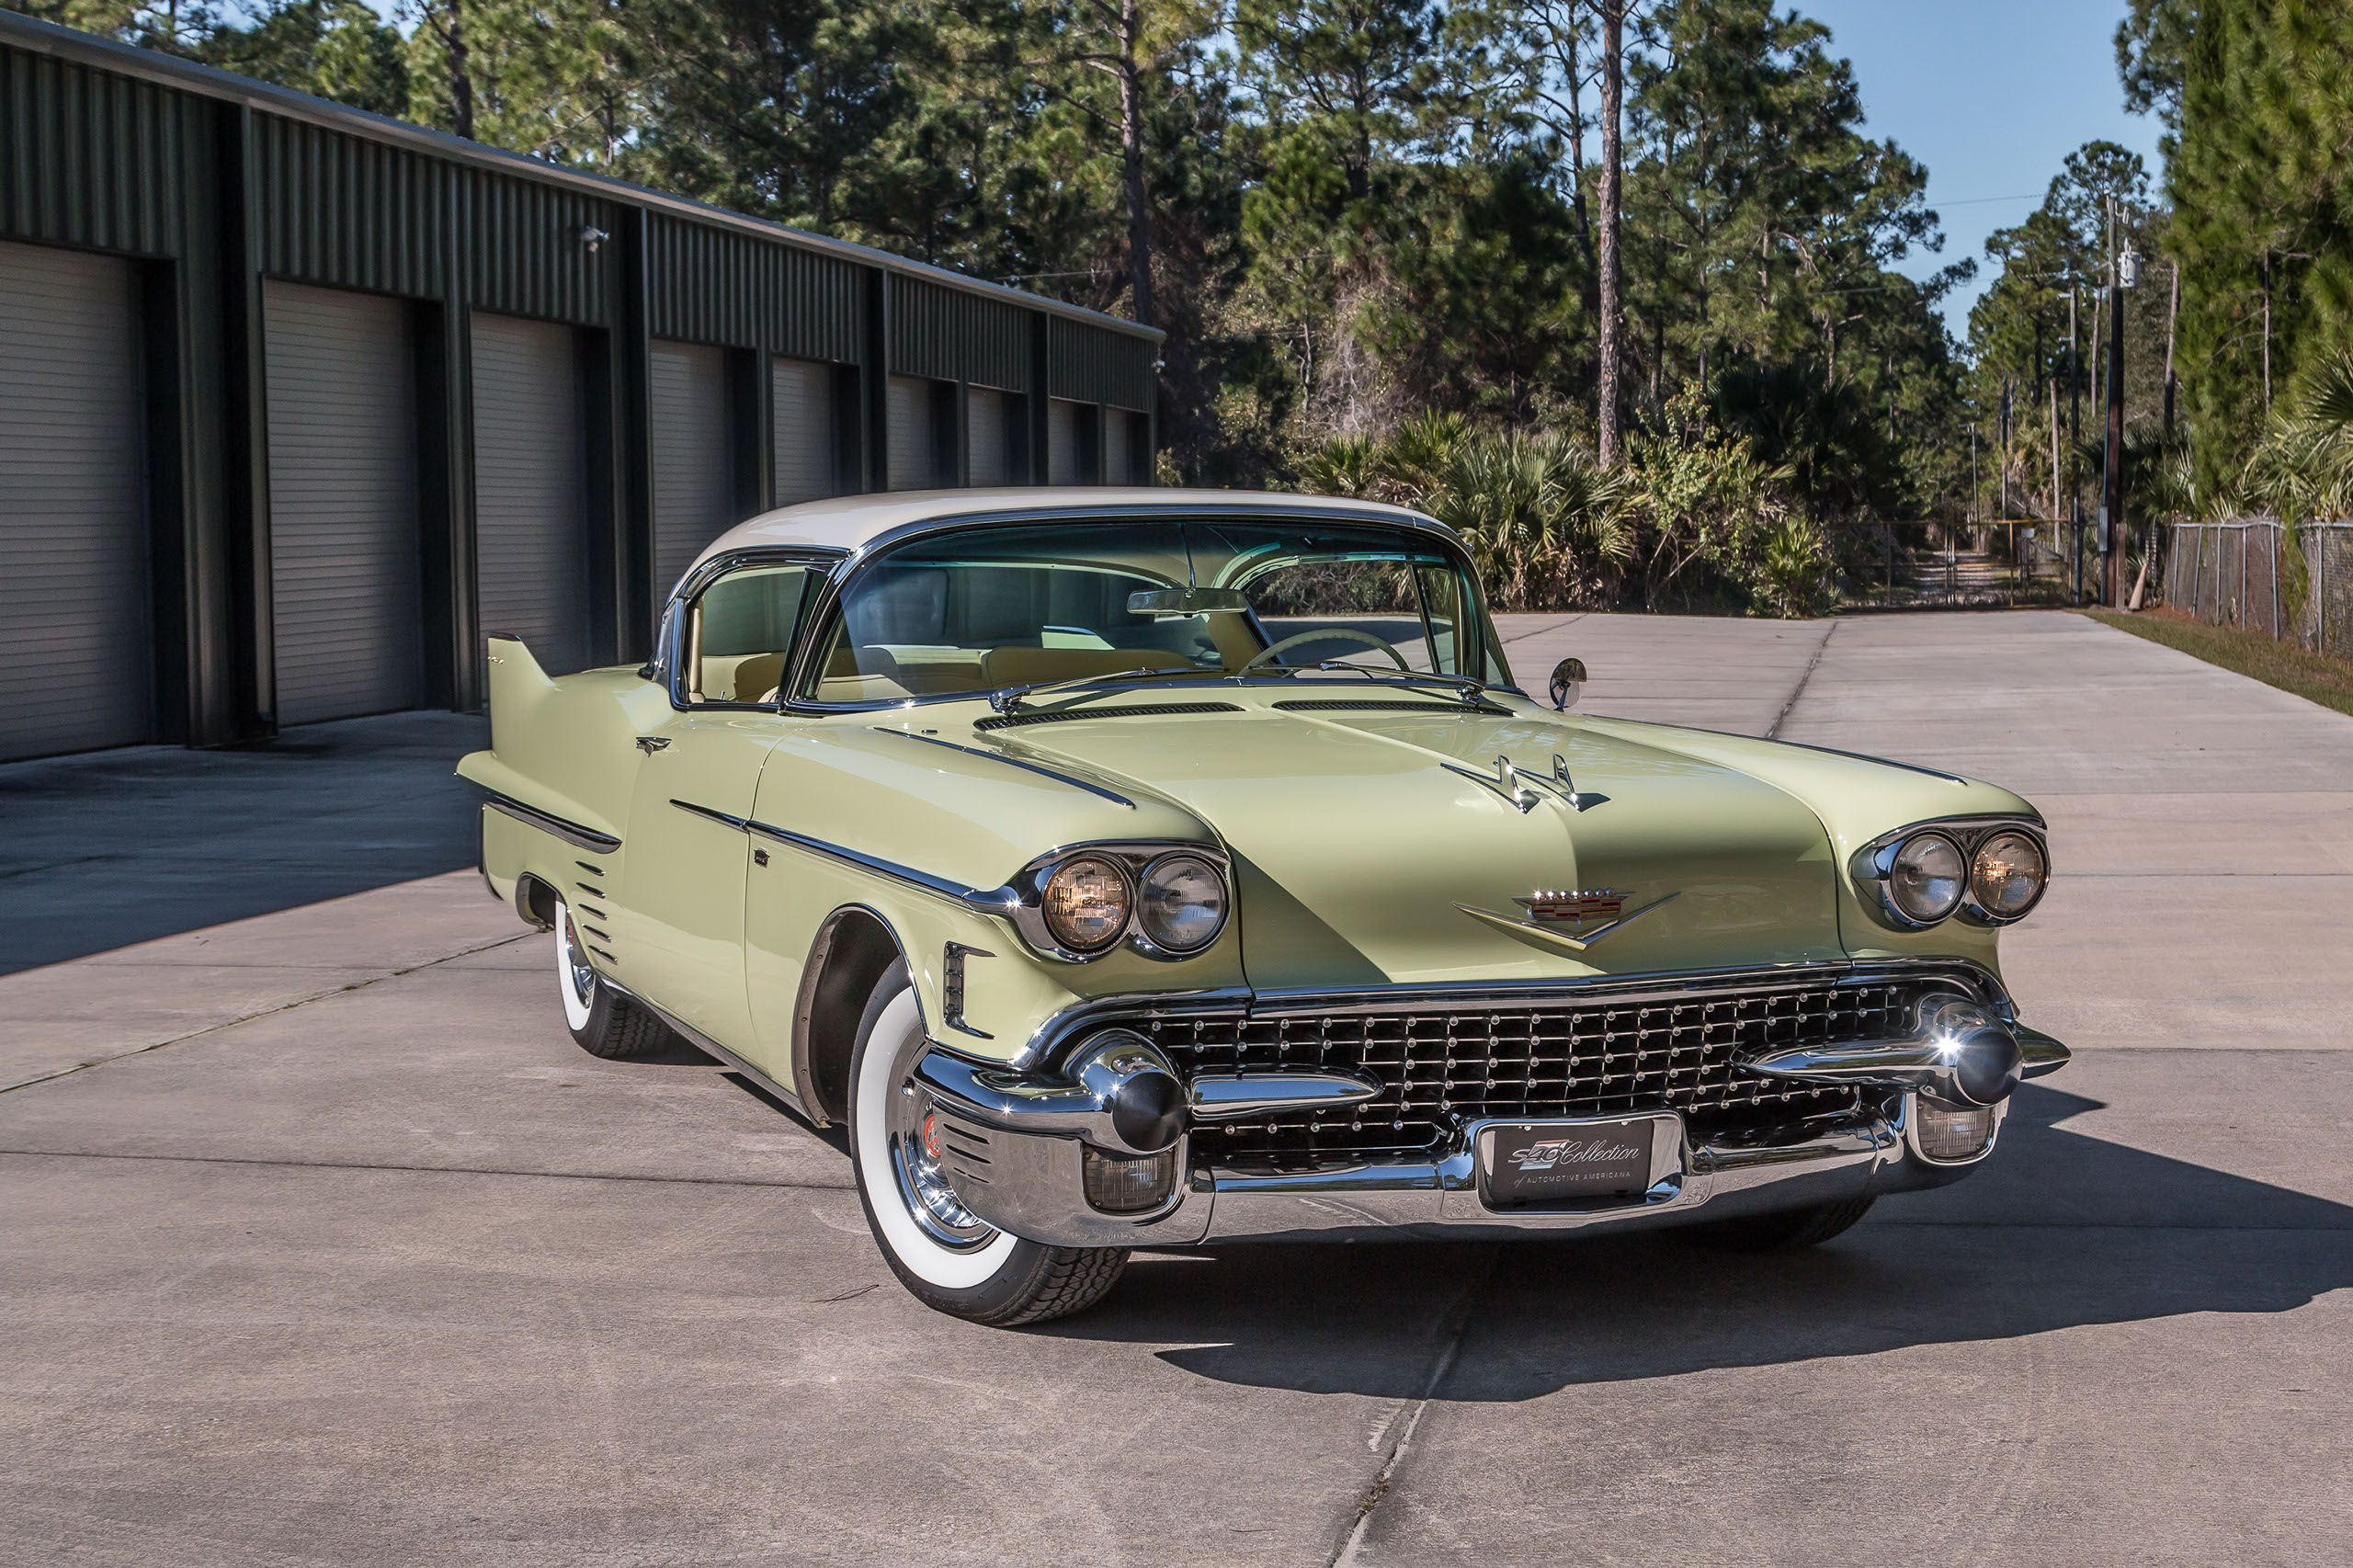 58 CADILLAC COUPE DEVILLE | Cadillac, Standard of the World ...